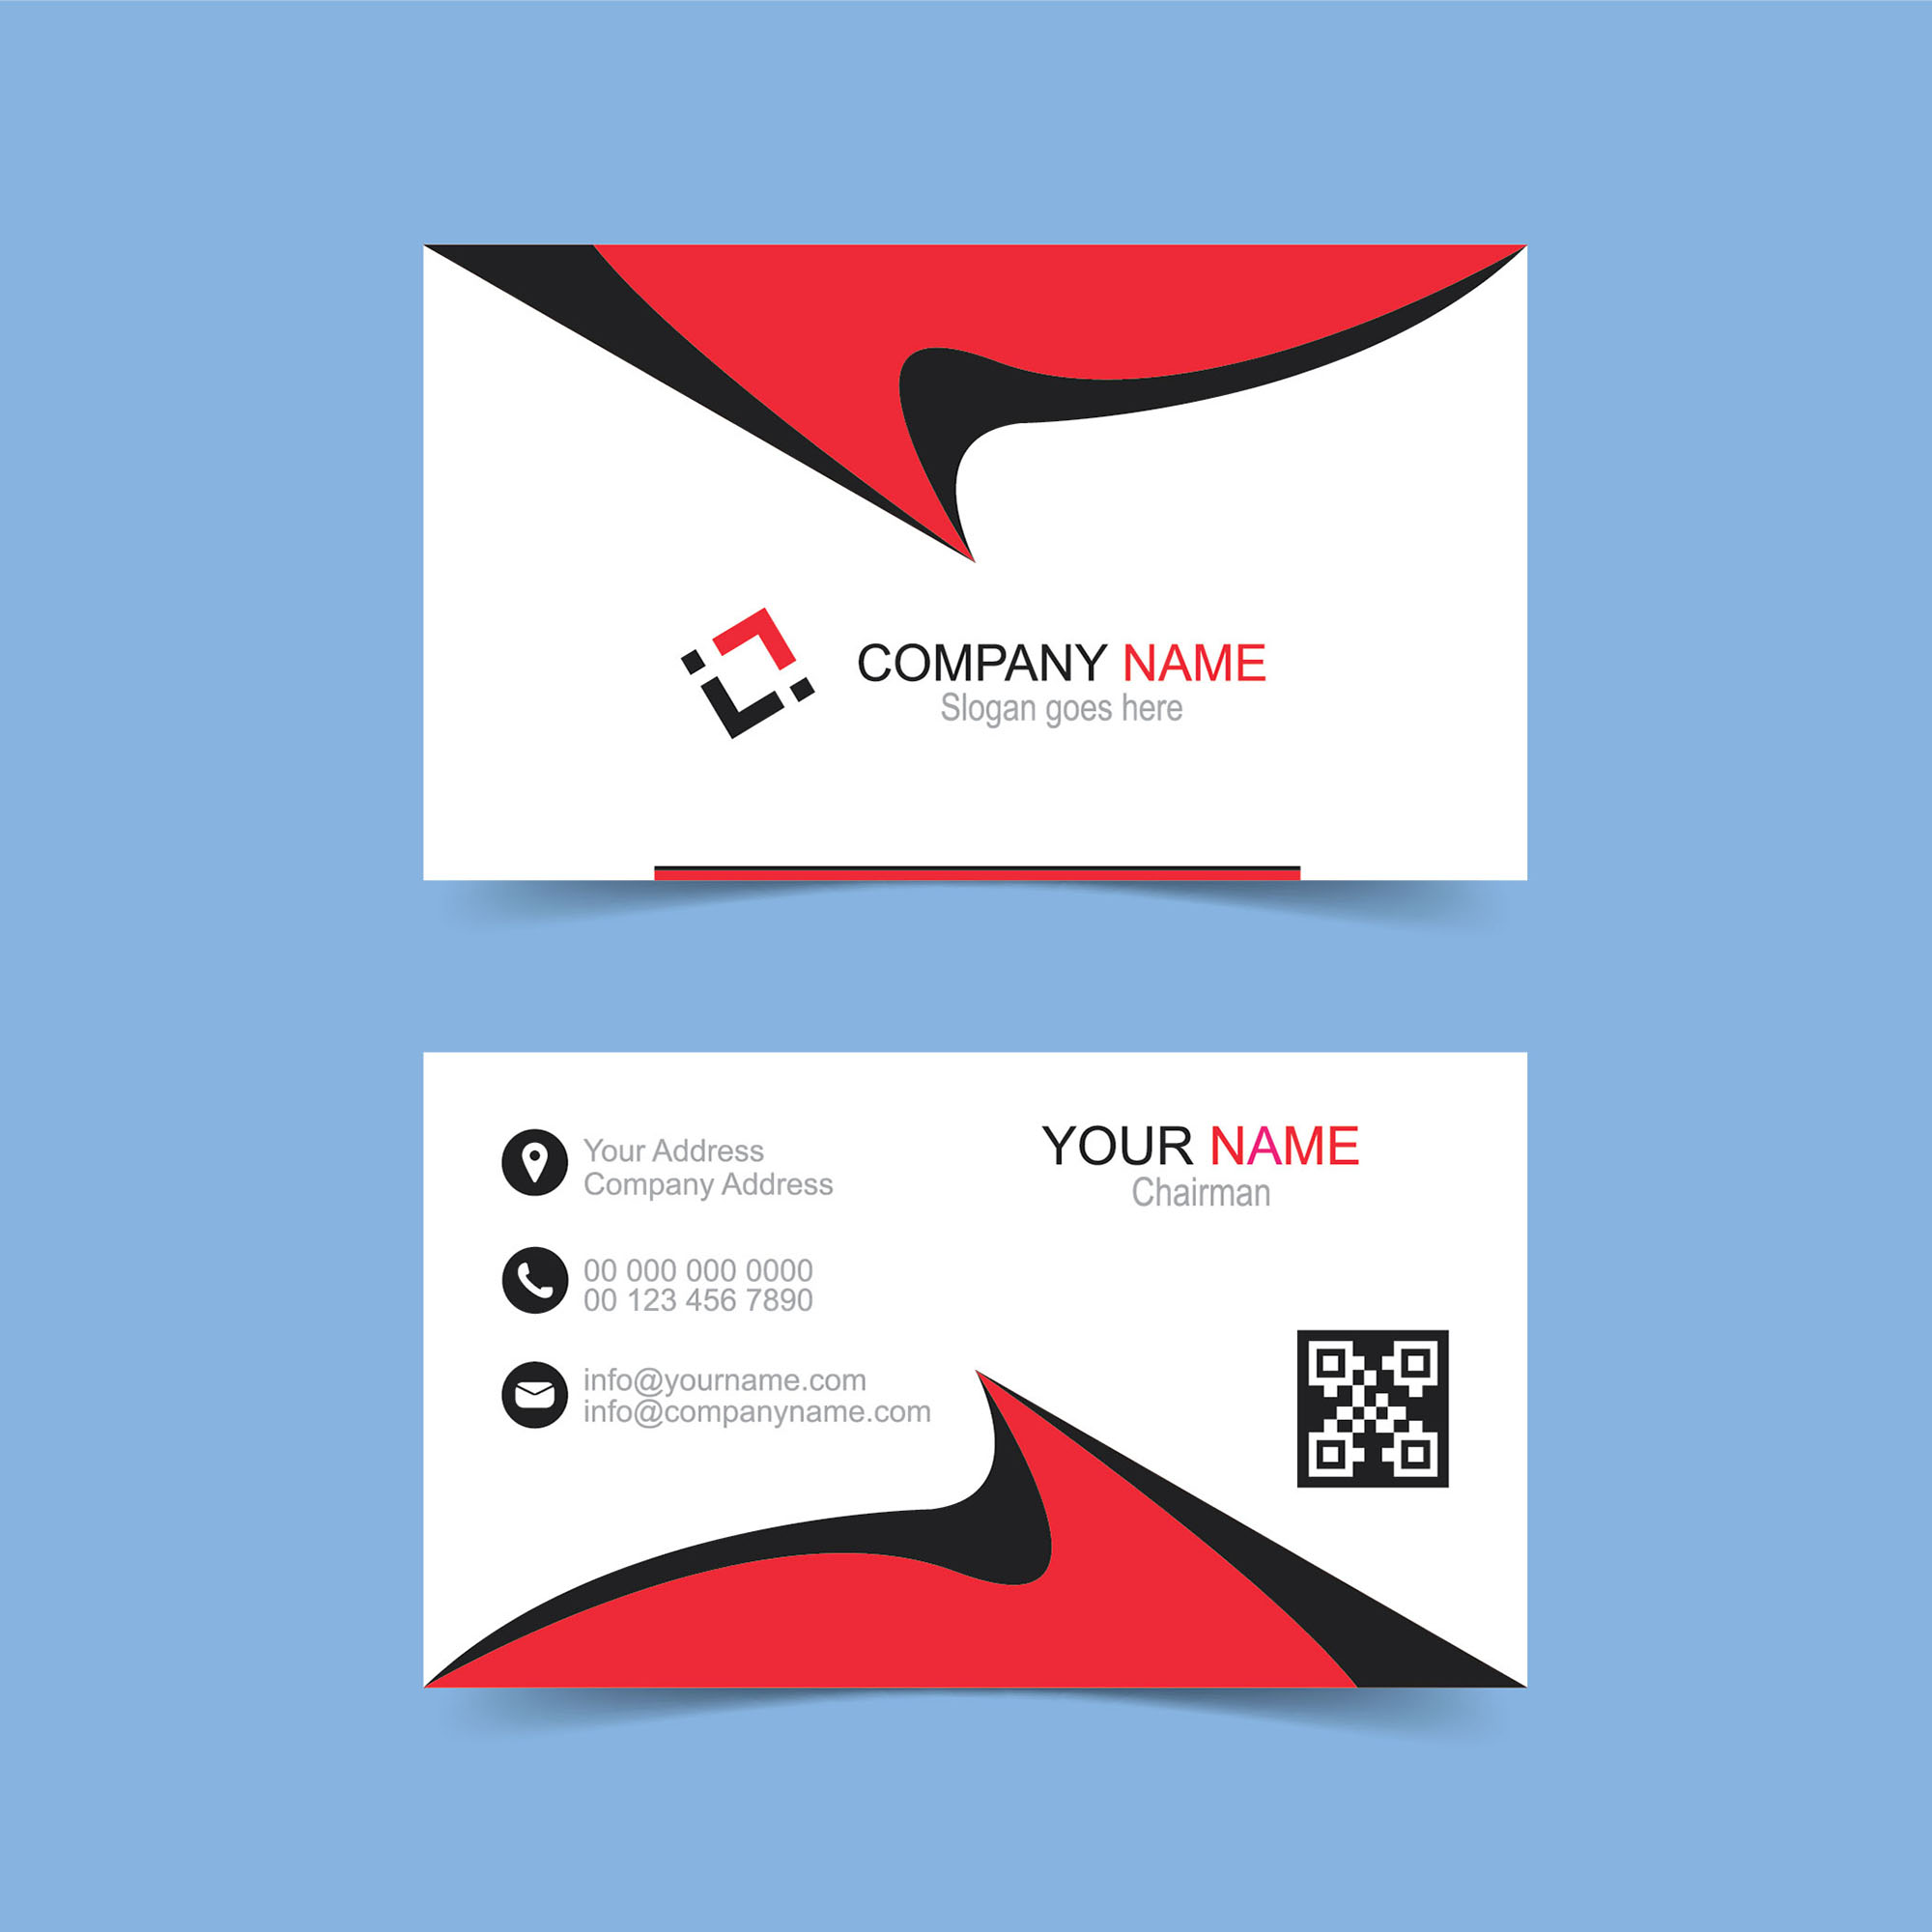 Double Sided Business Card Free Download - Wisxi.com